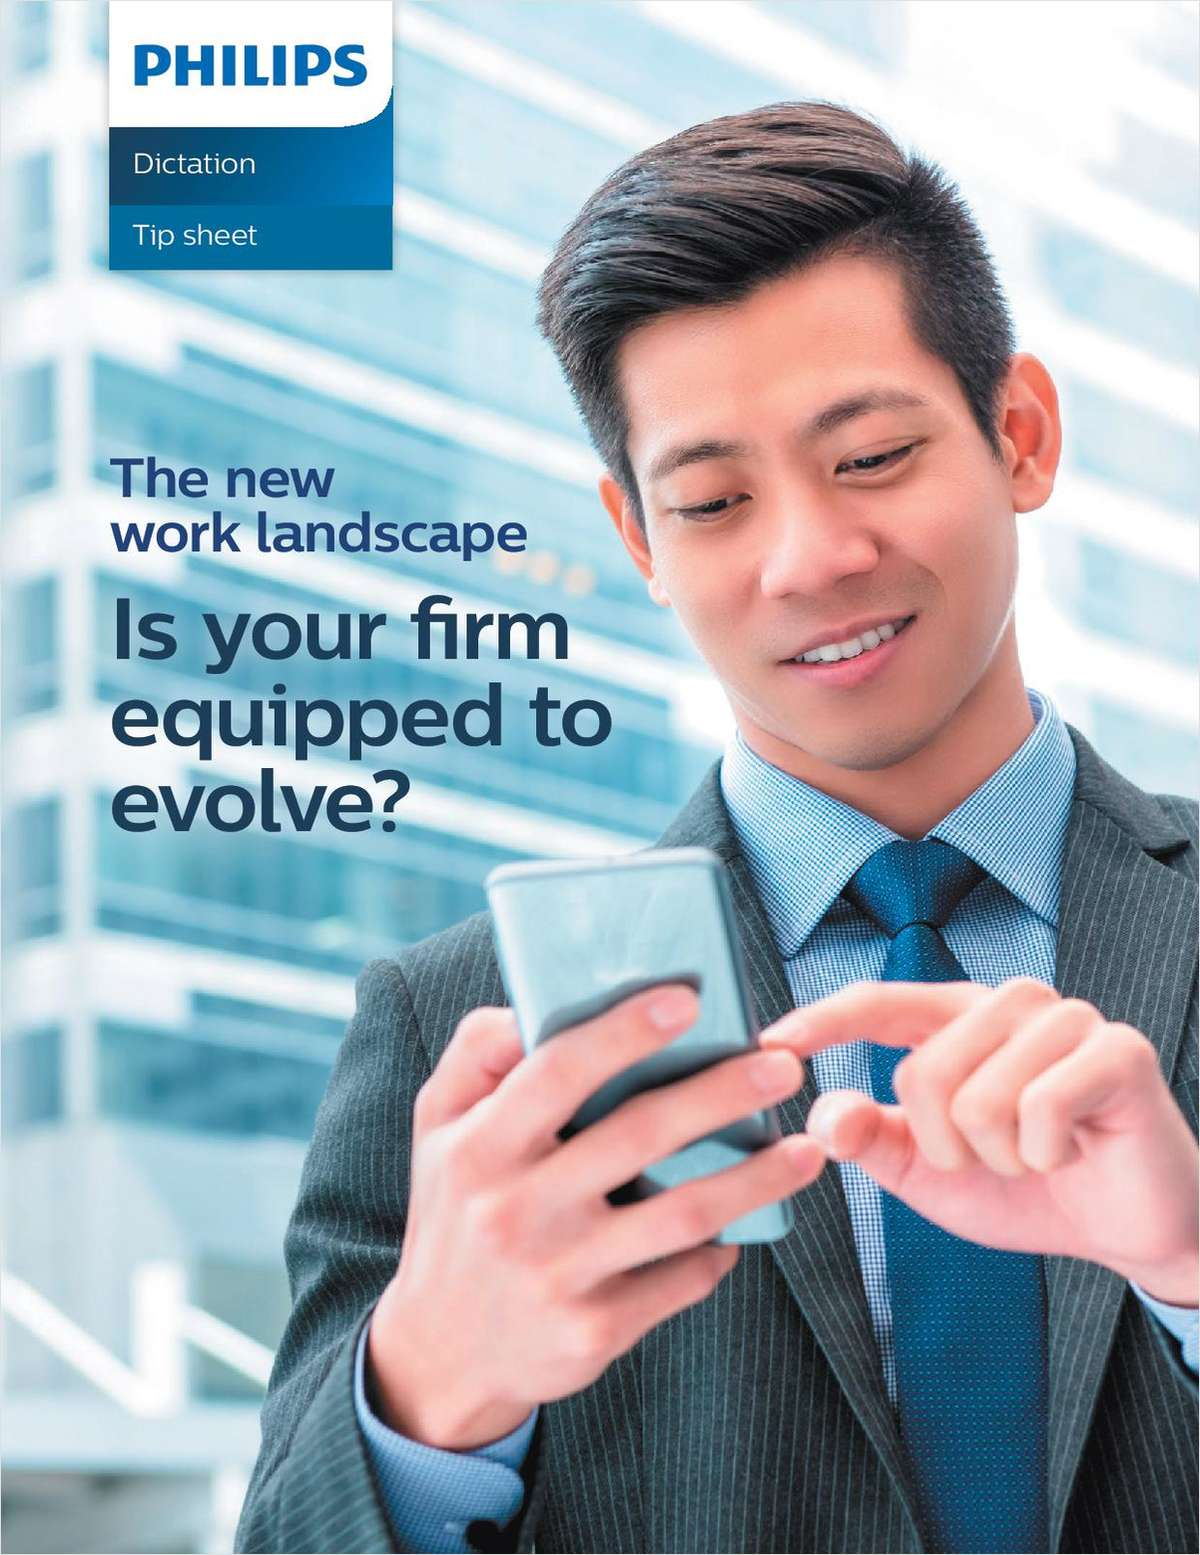 The New Work Landscape: Is Your Firm Equipped to Evolve?